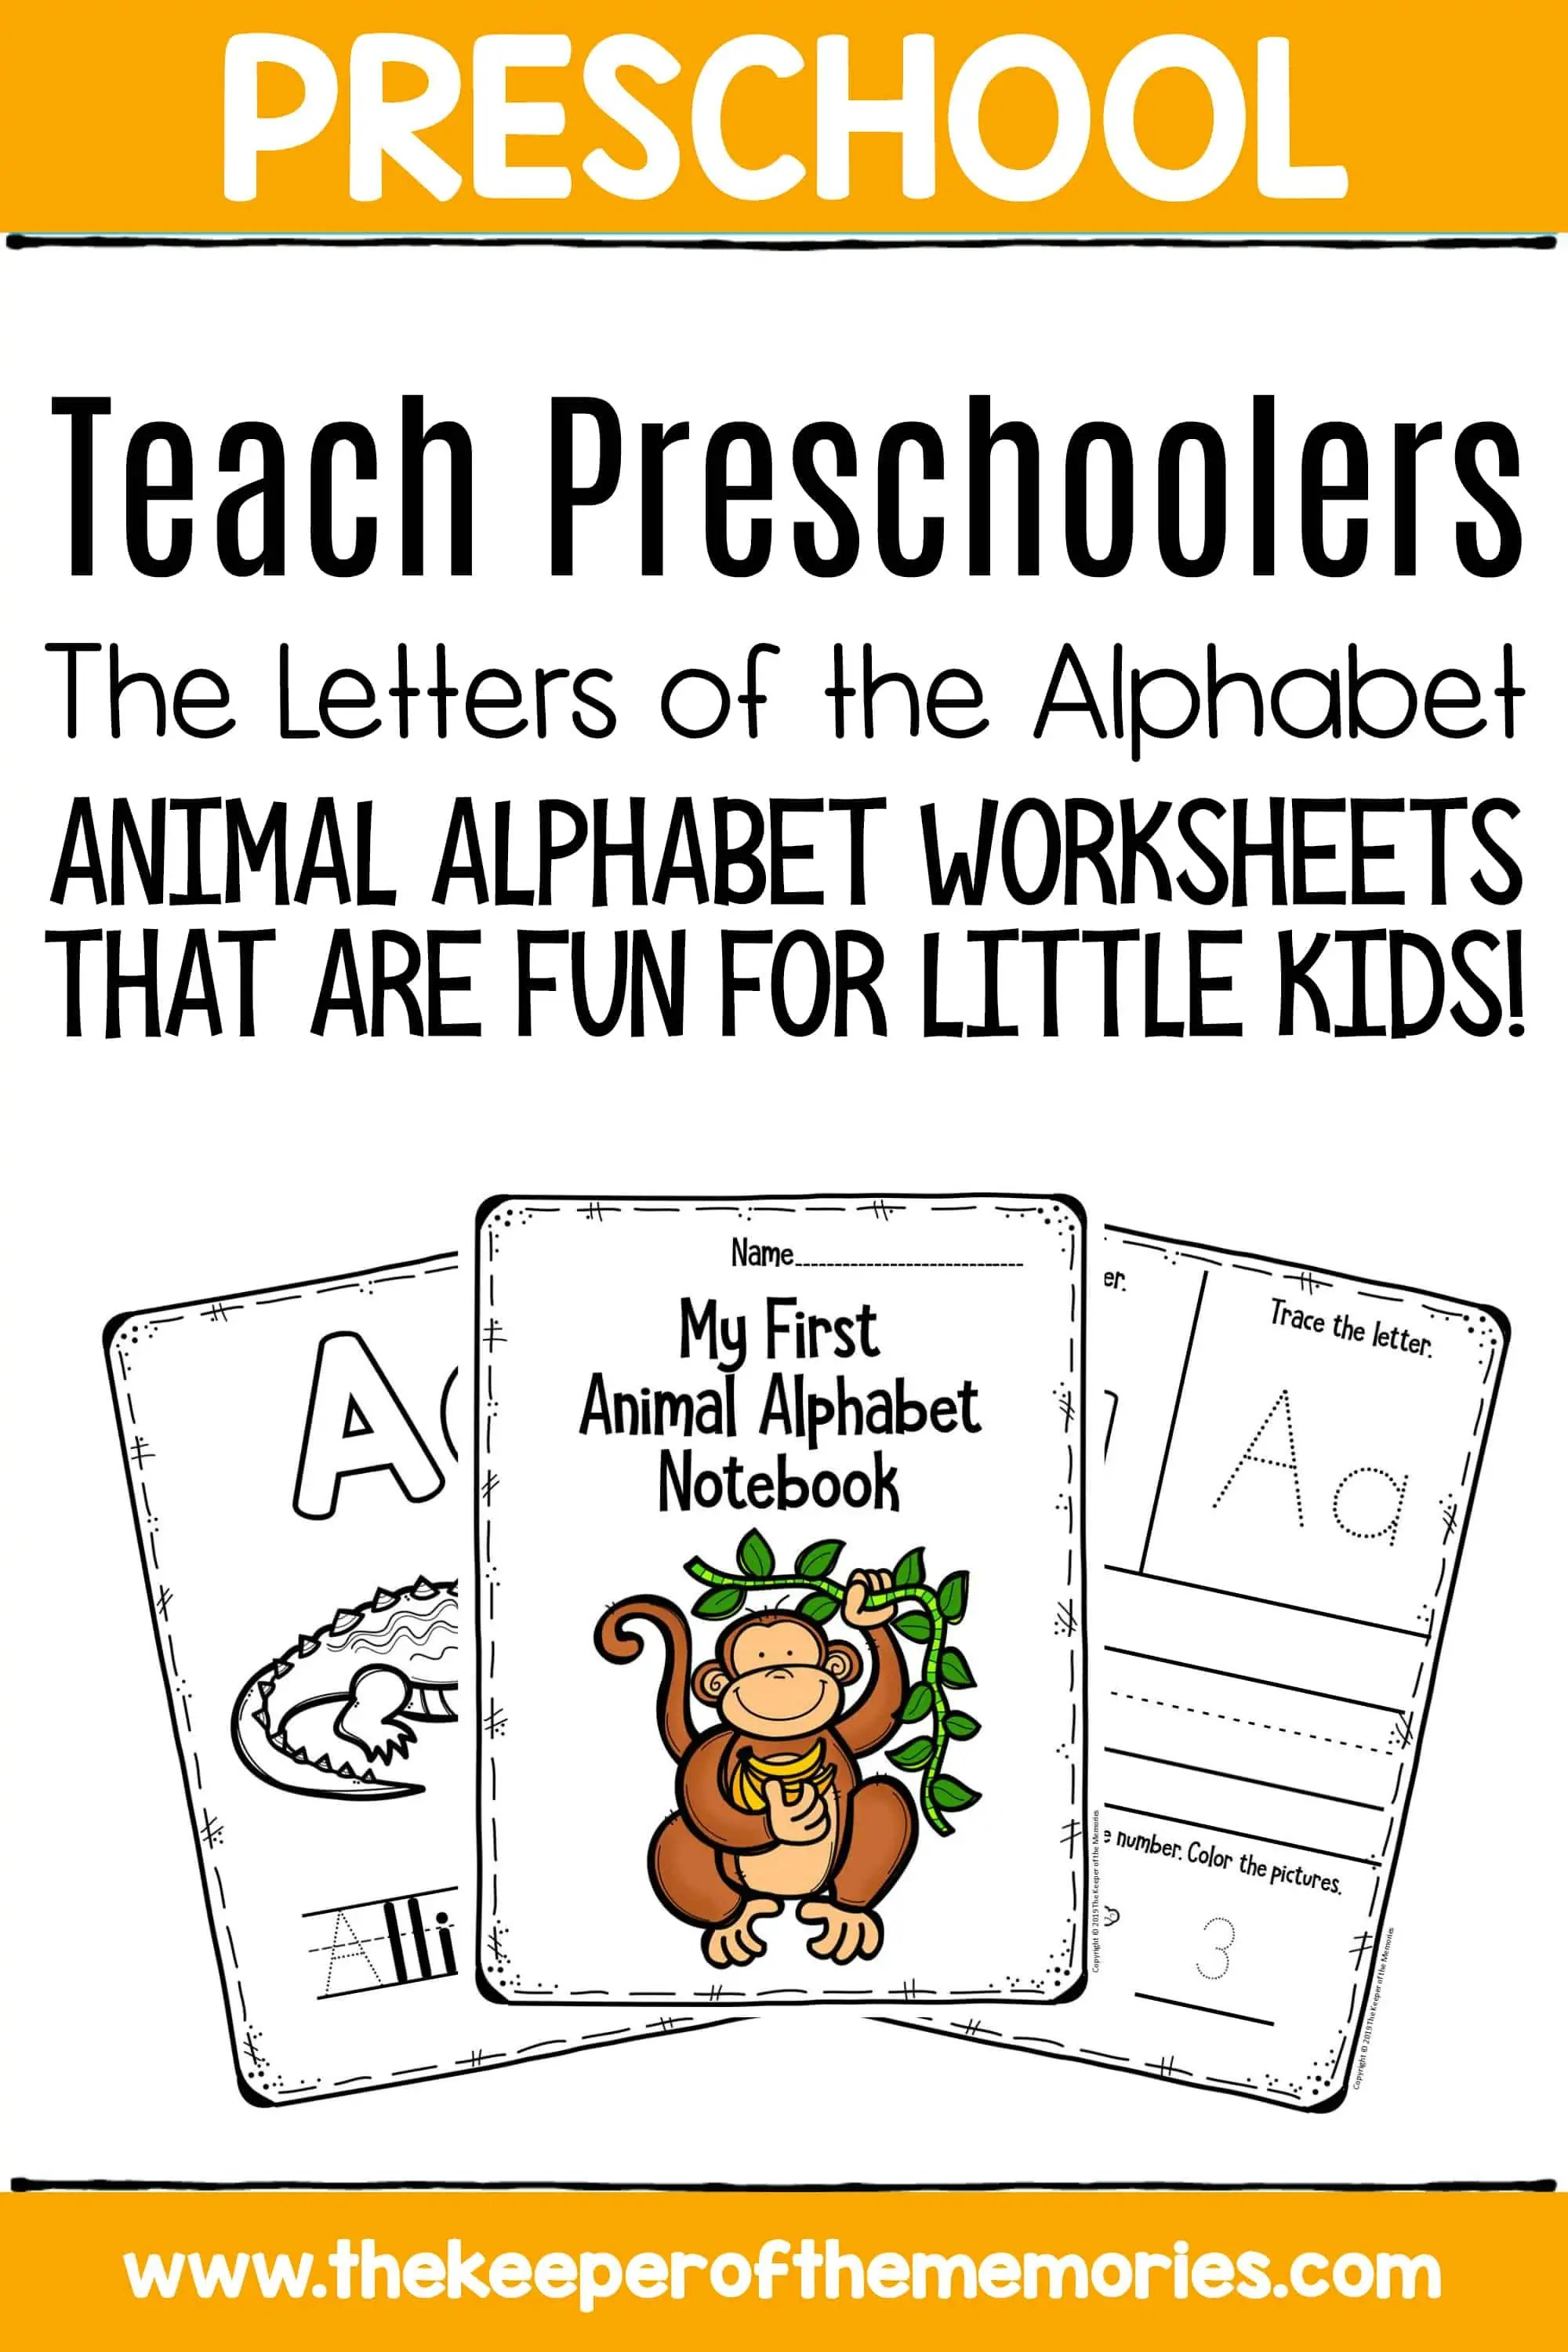 Preschool Worksheets Teach Preschoolers The Letters Of The